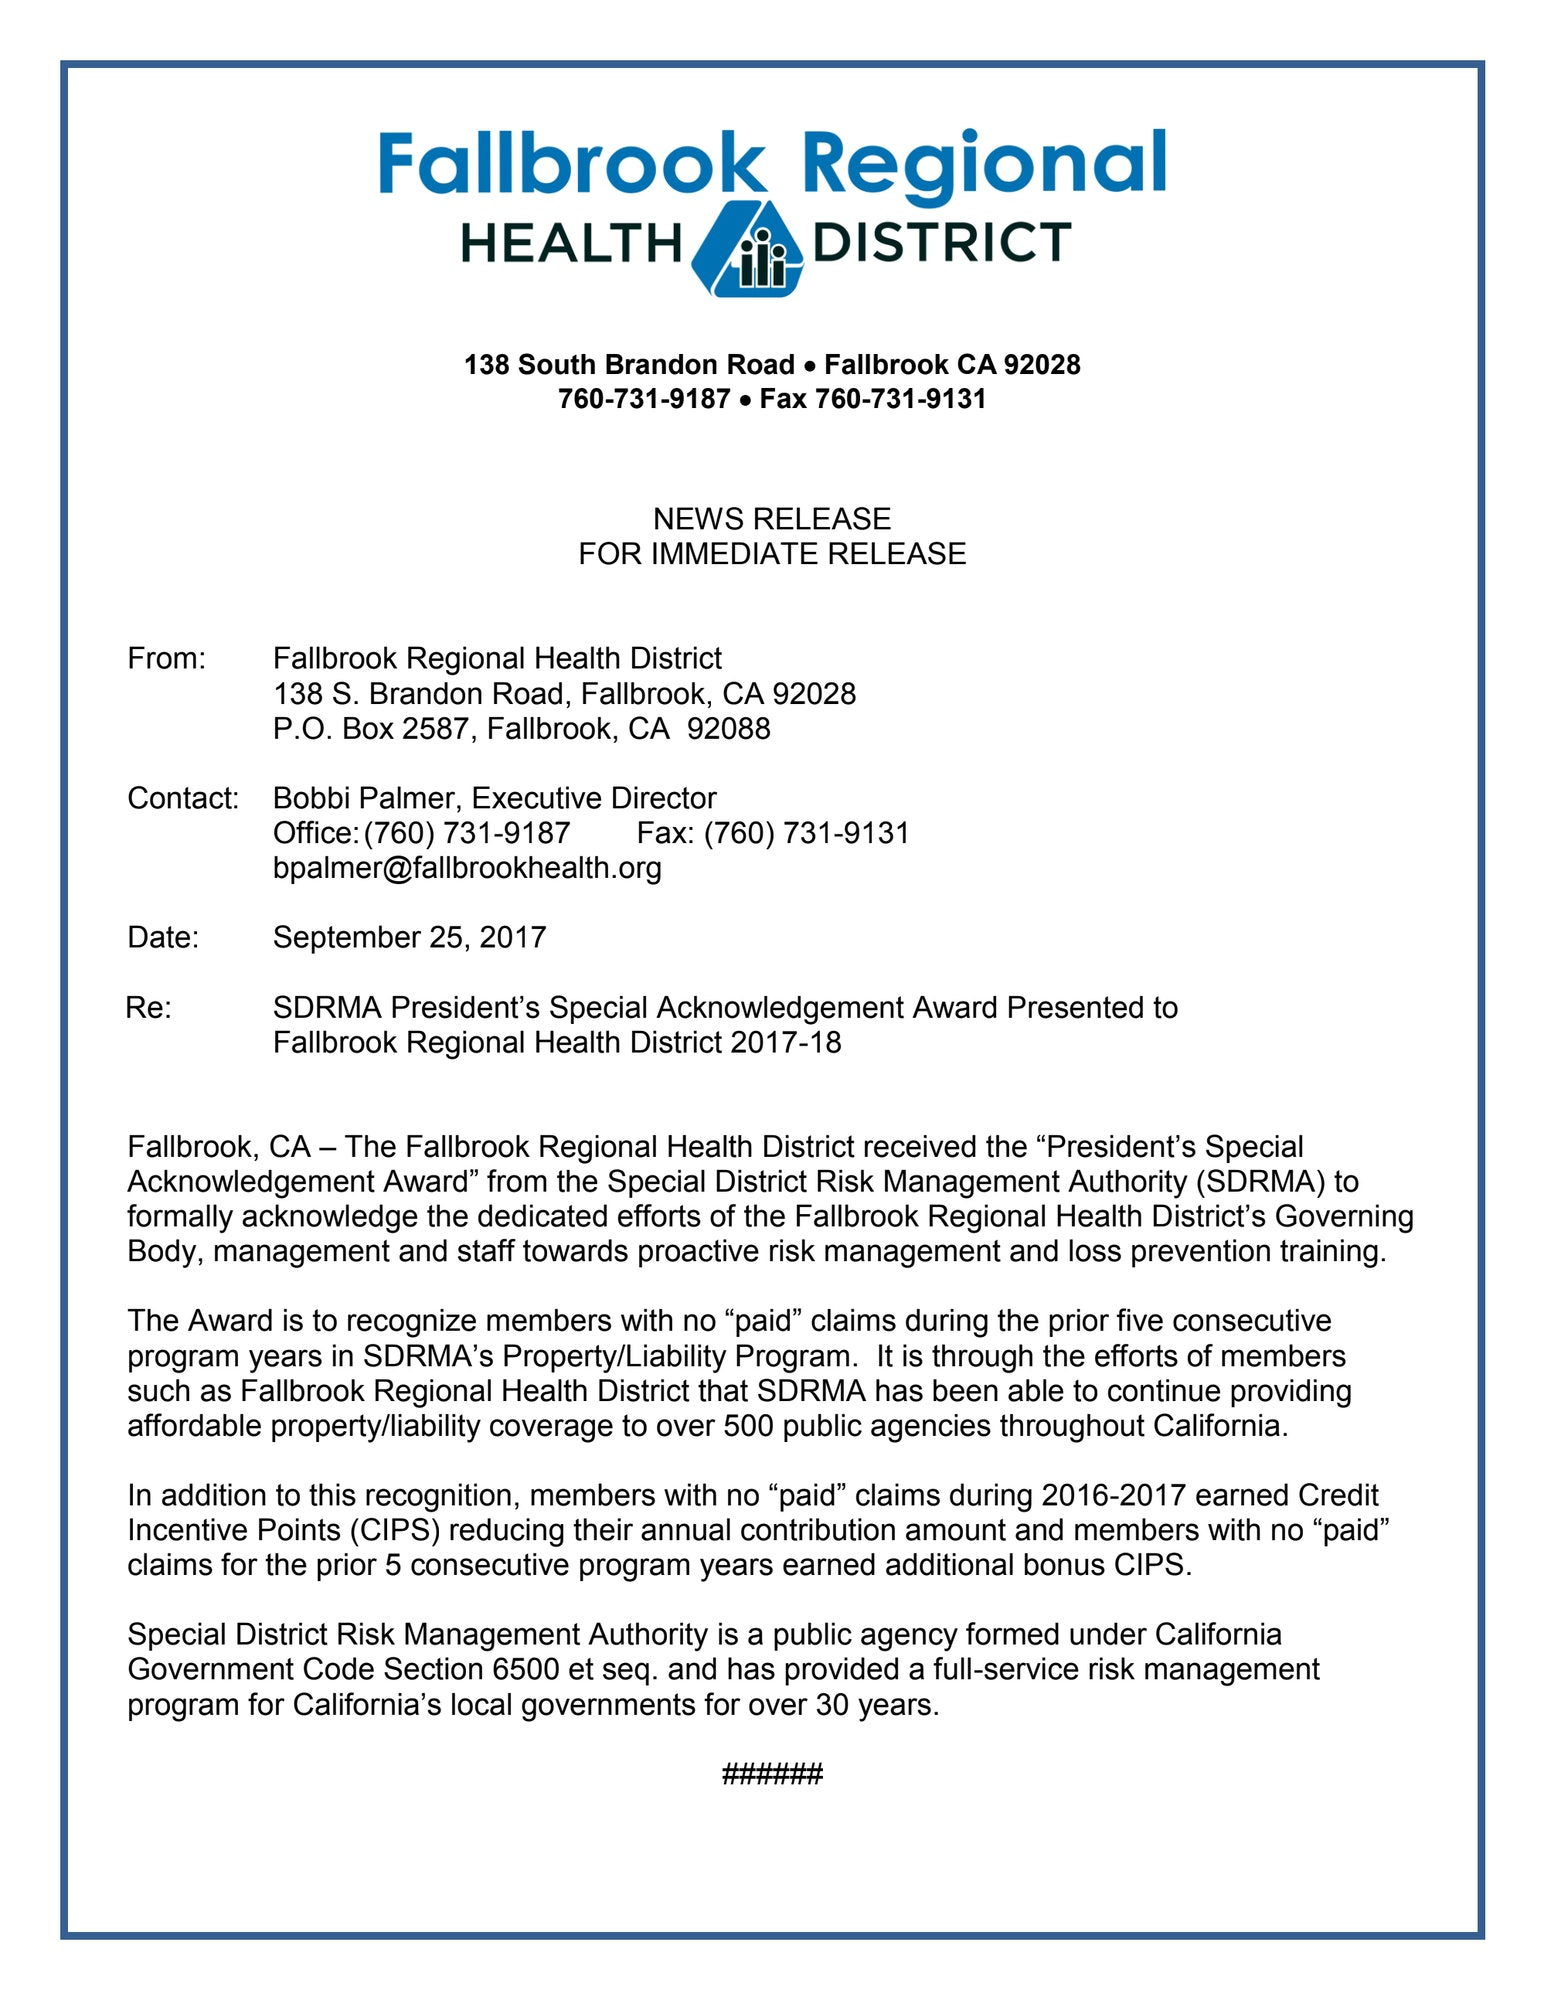 "NEWS RELEASE FOR IMMEDIATE RELEASE   From:  	Fallbrook Regional Health District 	138 S. Brandon Road, Fallbrook, CA 92028 P.O. Box 2587, Fallbrook, CA  92088  Contact:	Bobbi Palmer, Executive Director 	Office:	(760) 731-9187	Fax: (760) 731-9131 	bpalmer@fallbrookhealth.org  Date:	September 25, 2017  Re:	SDRMA President's Special Acknowledgement Award Presented to  	Fallbrook Regional Health District 2017-18   Fallbrook, CA – The Fallbrook Regional Health District received the ""President's Special Acknowledgement Award"" from the Special District Risk Management Authority (SDRMA) to formally acknowledge the dedicated efforts of the Fallbrook Regional Health District's Governing Body, management and staff towards proactive risk management and loss prevention training.  The Award is to recognize members with no ""paid"" claims during the prior five consecutive program years in SDRMA's Property/Liability Program.  It is through the efforts of members such as Fallbrook Regional Health District that SDRMA has been able to continue providing affordable property/liability coverage to over 500 public agencies throughout California.  In addition to this recognition, members with no ""paid"" claims during 2016-2017 earned Credit Incentive Points (CIPS) reducing their annual contribution amount and members with no ""paid"" claims for the prior 5 consecutive program years earned additional bonus CIPS.  Special District Risk Management Authority is a public agency formed under California Government Code Section 6500 et seq. and has provided a full-service risk management program for California's local governments for over 30 years.  ######"